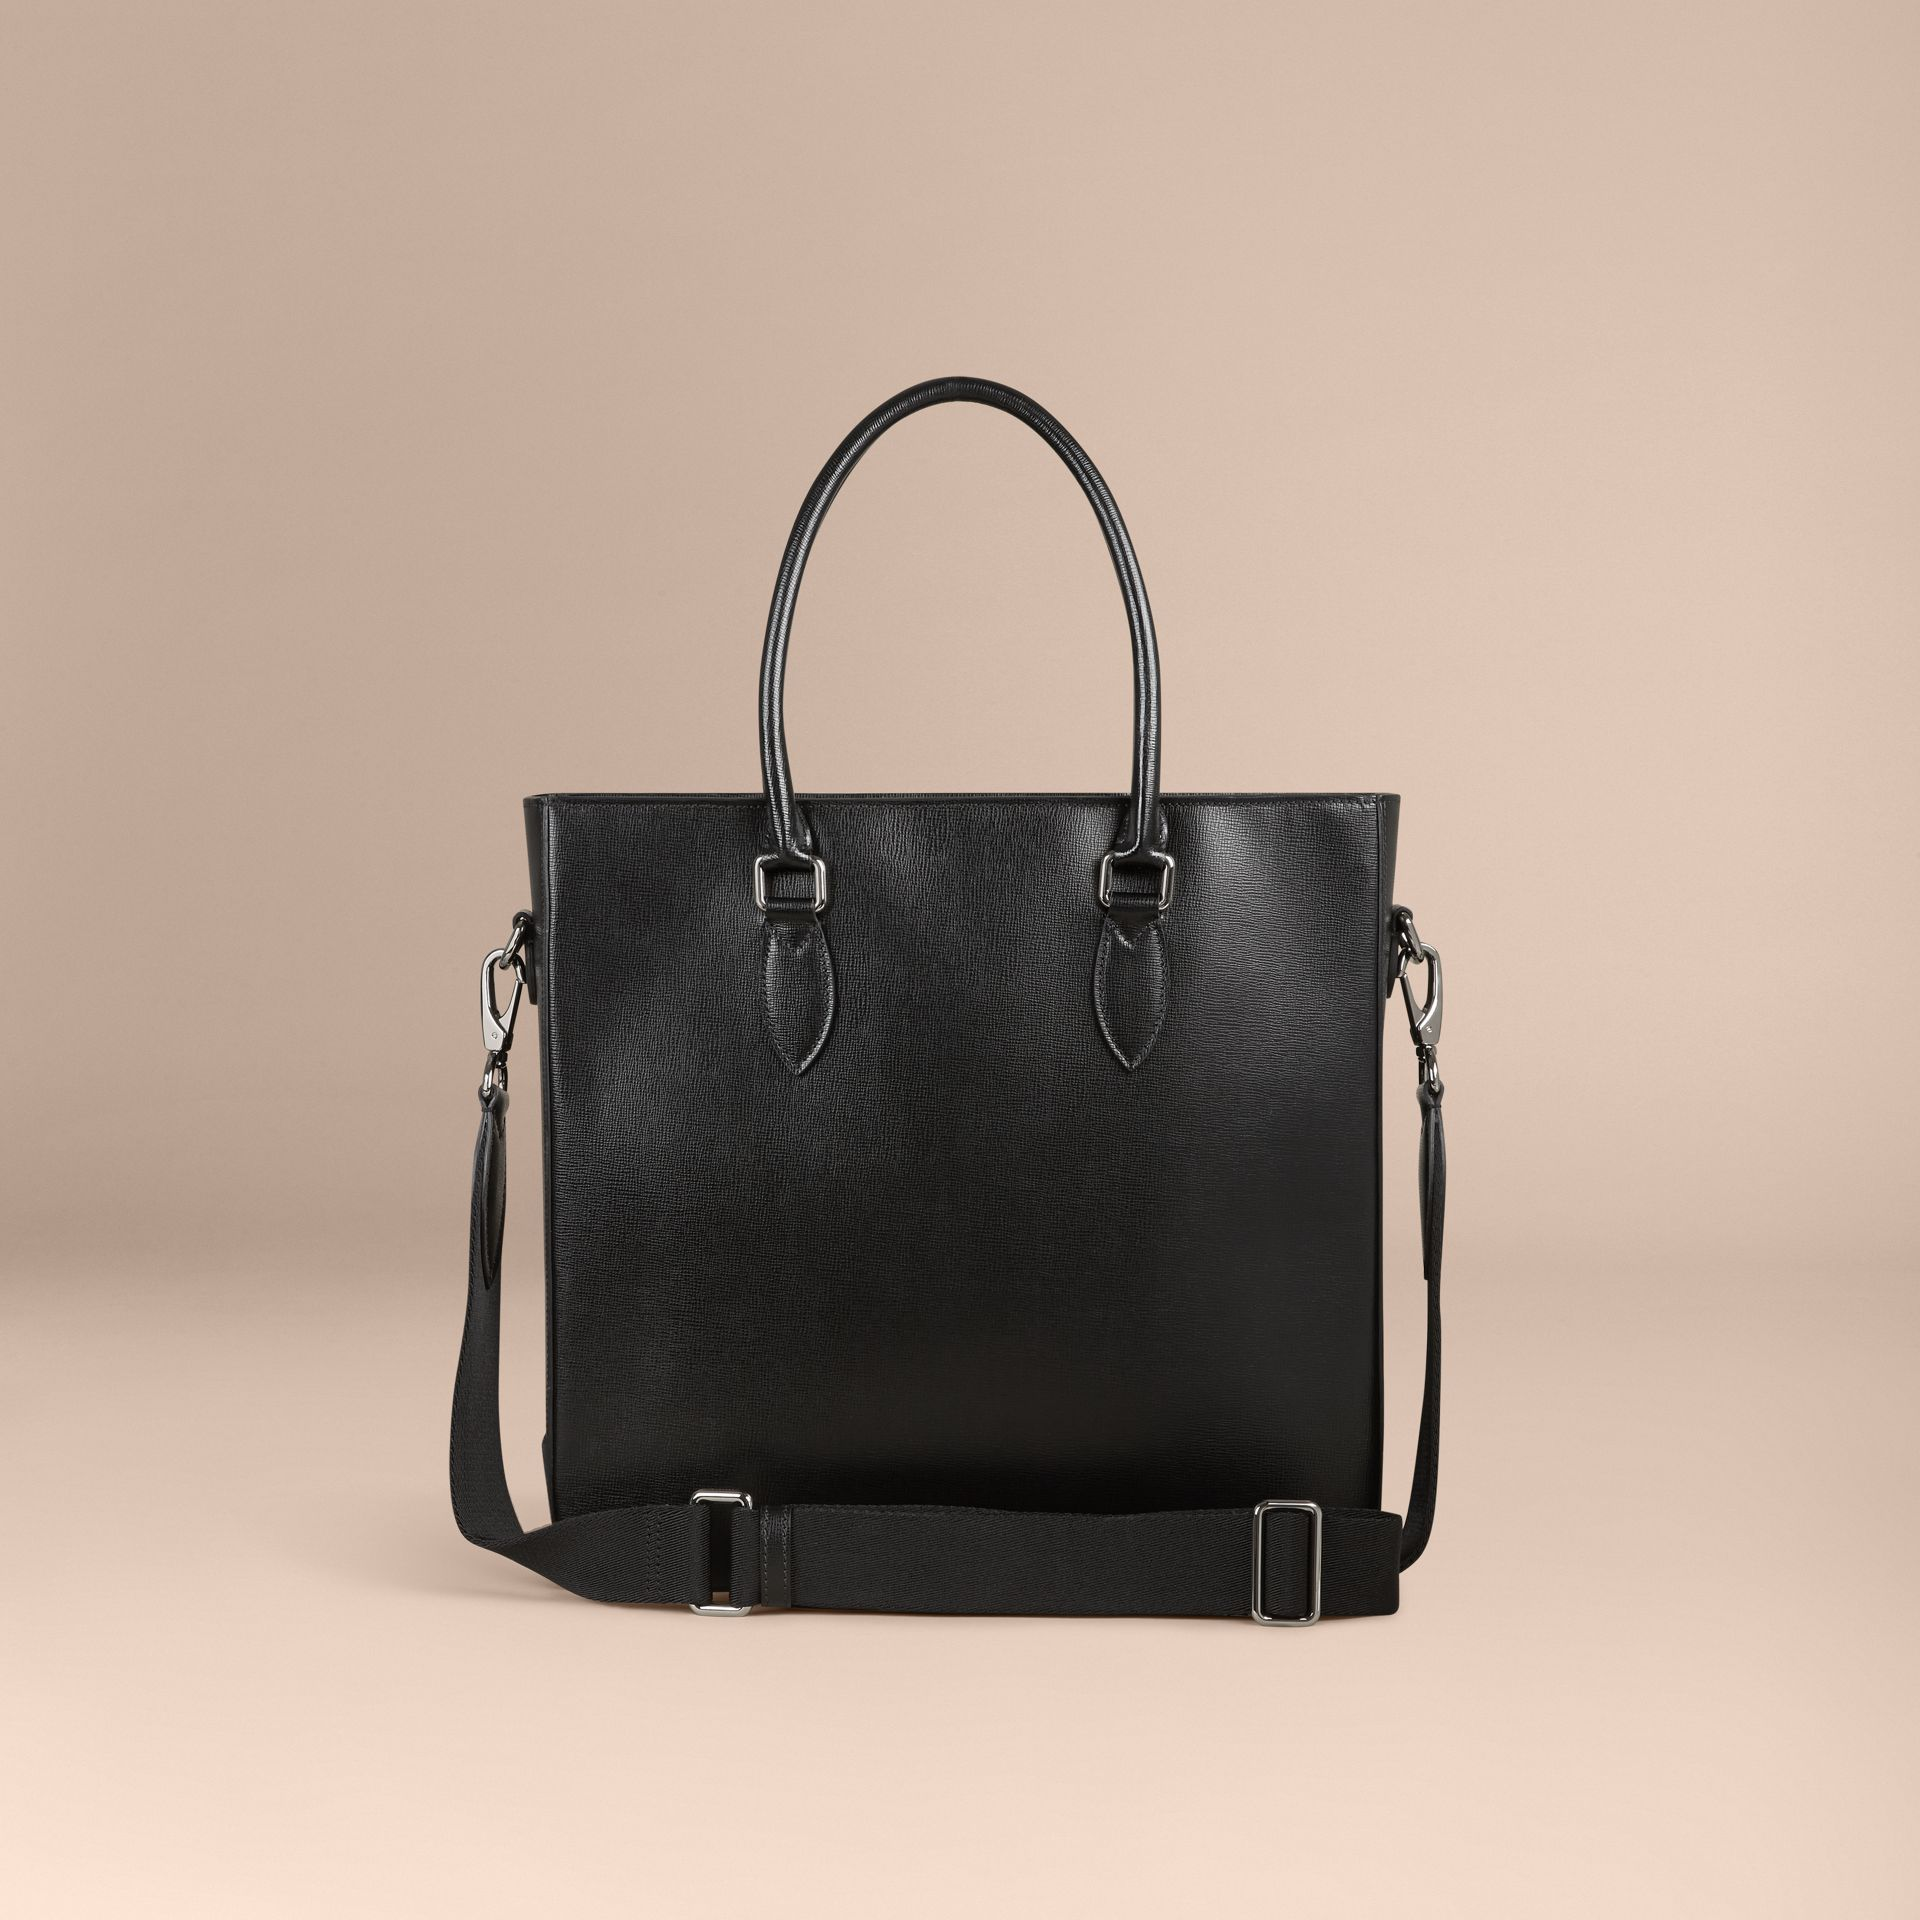 Black London Leather Tote Bag Black - gallery image 5